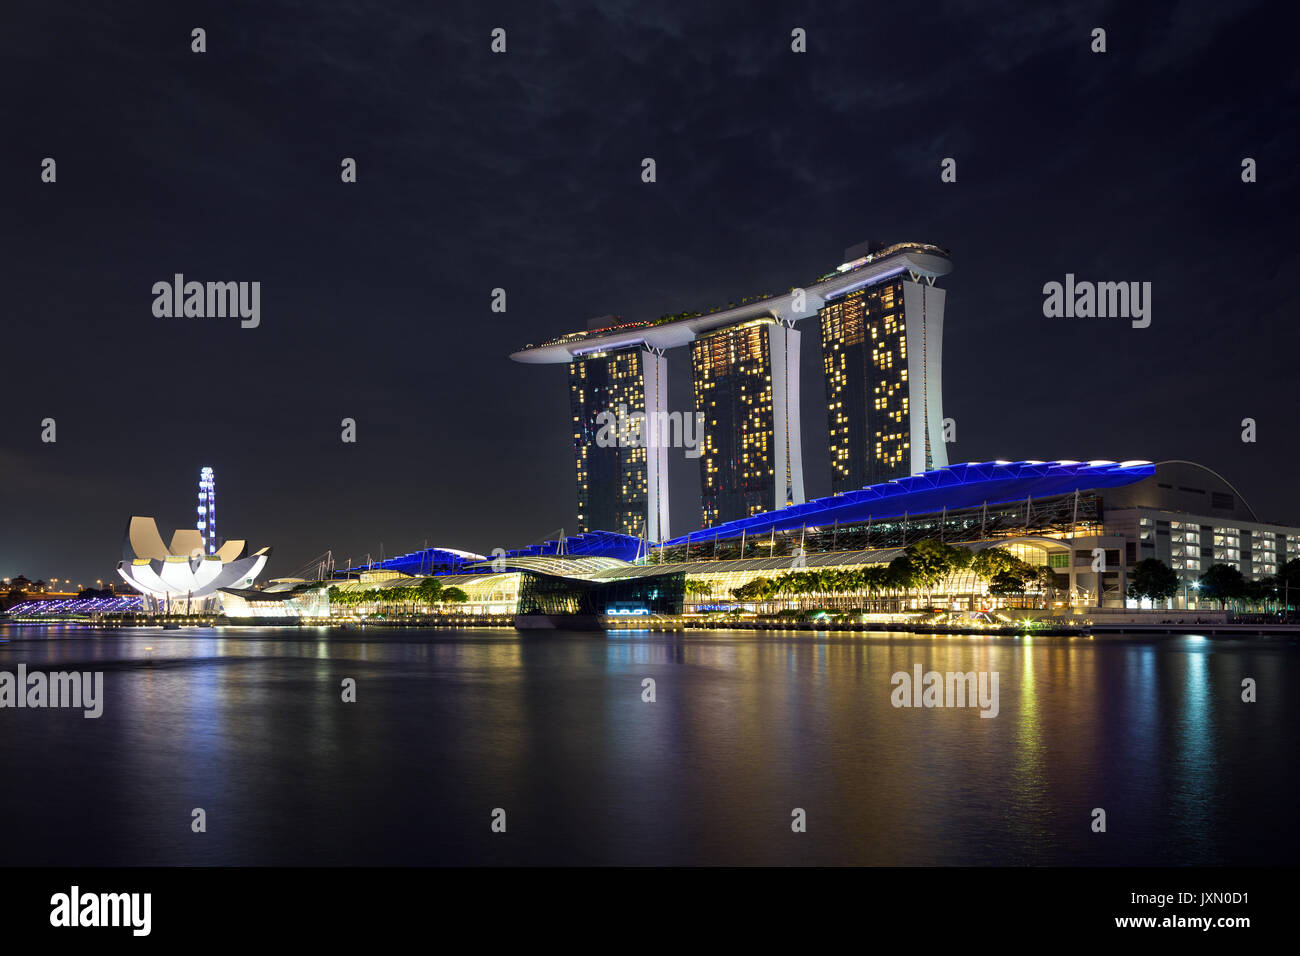 Singapore - February 21, 2016 : Marina Bay Sands by night, an integrated resort - opened in 2010 - fronting Marina Bay in Singapore - Stock Image